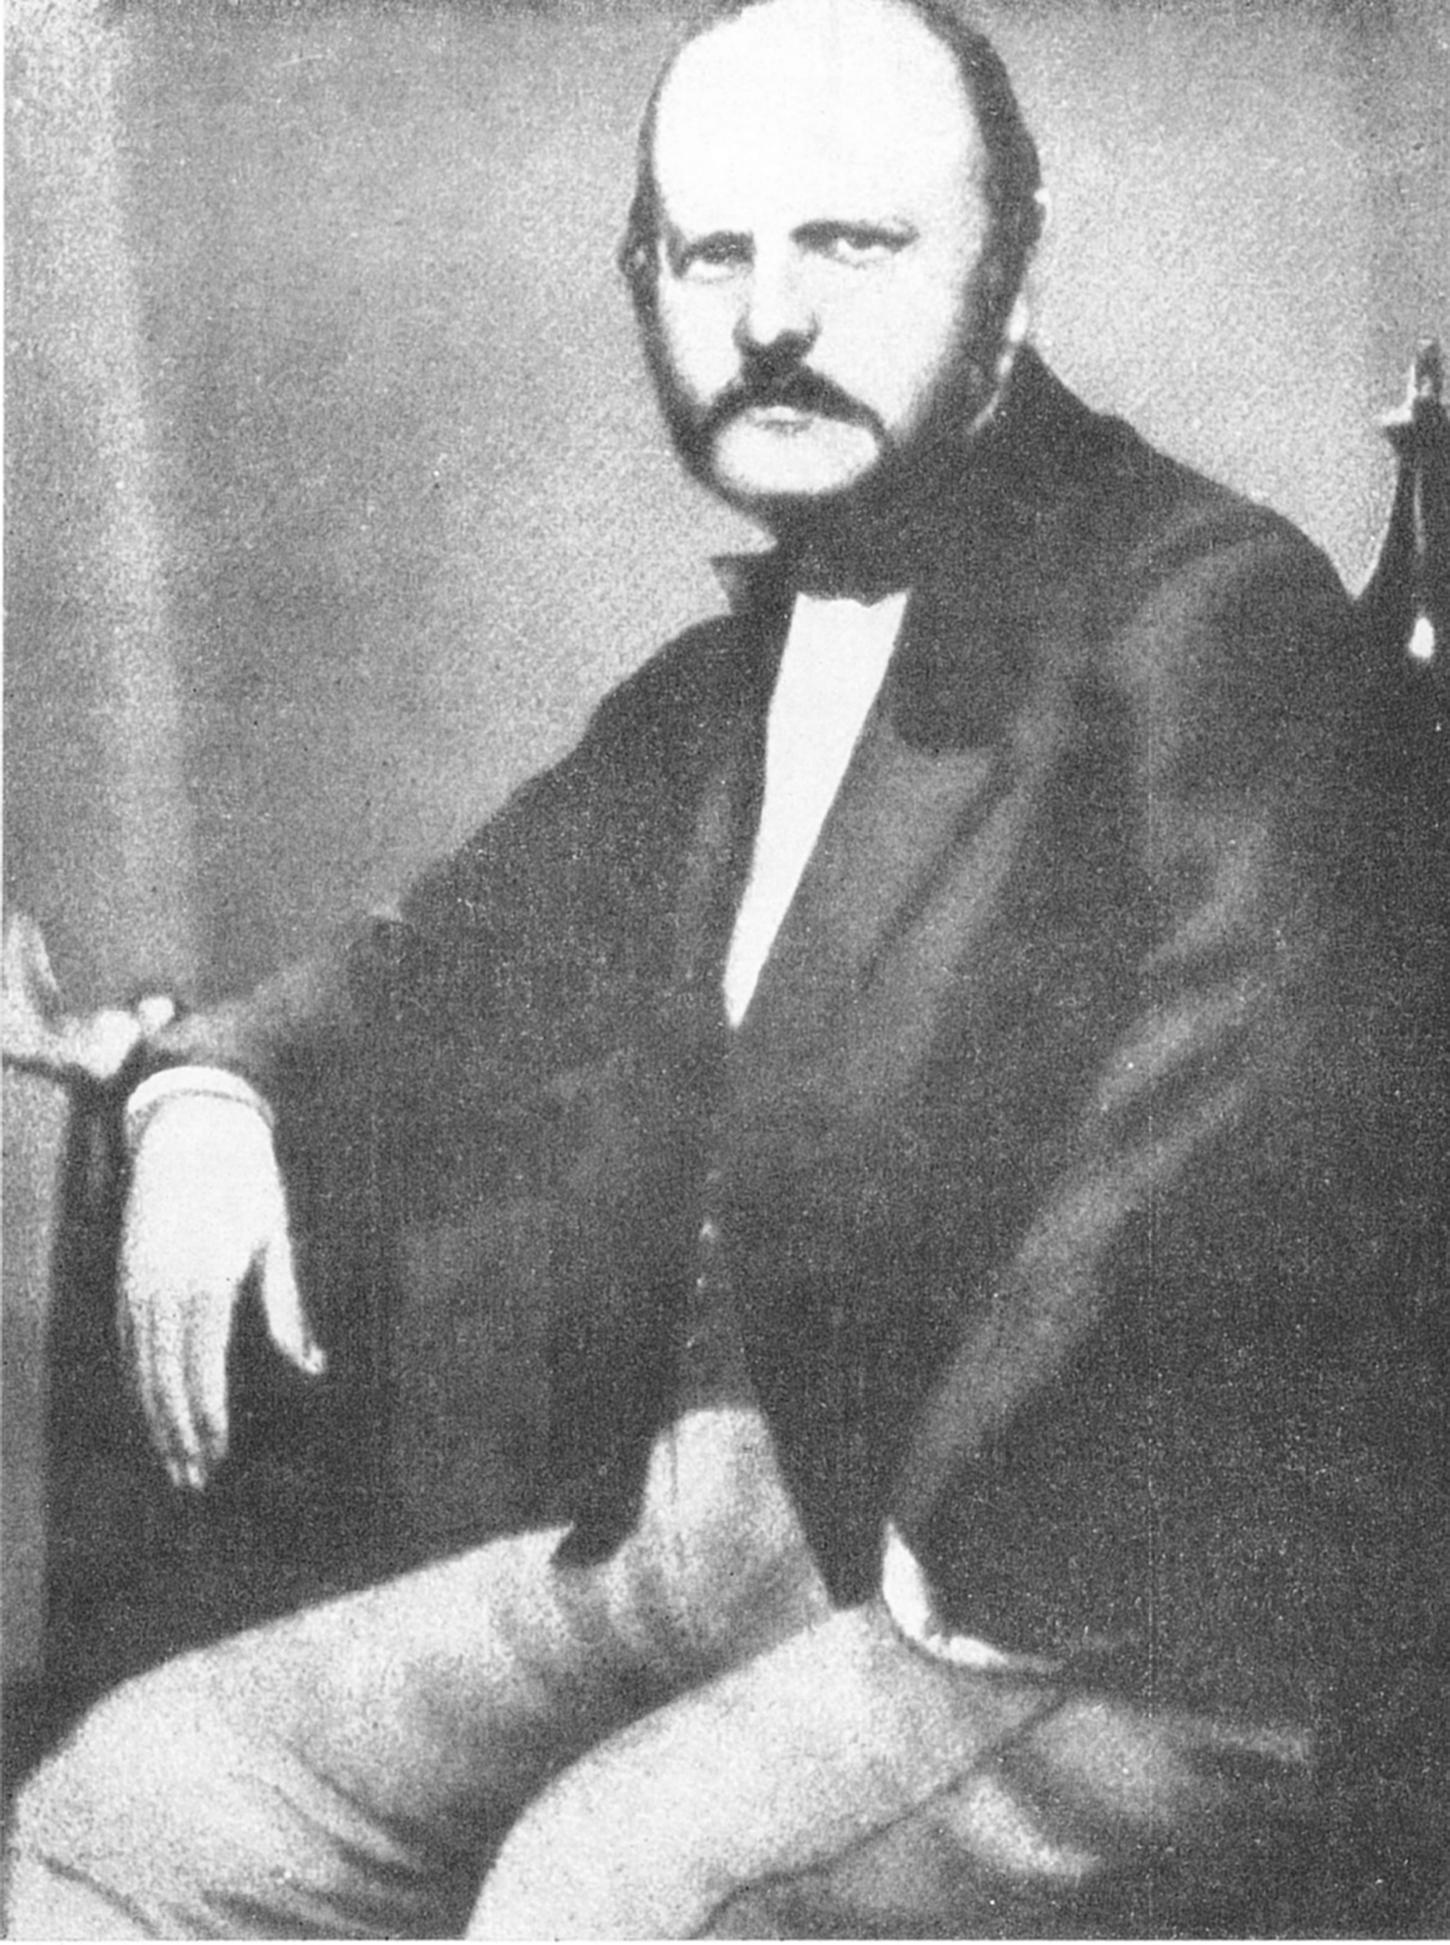 the case of semmelweis Semmelweis also noticed that women with other infections or diseases, such as a knee infection in one case, could pass the disease onto the other women in their area the nurses and physicians that attended these women would not wash their hands between patients and carried bacteria from one to another.